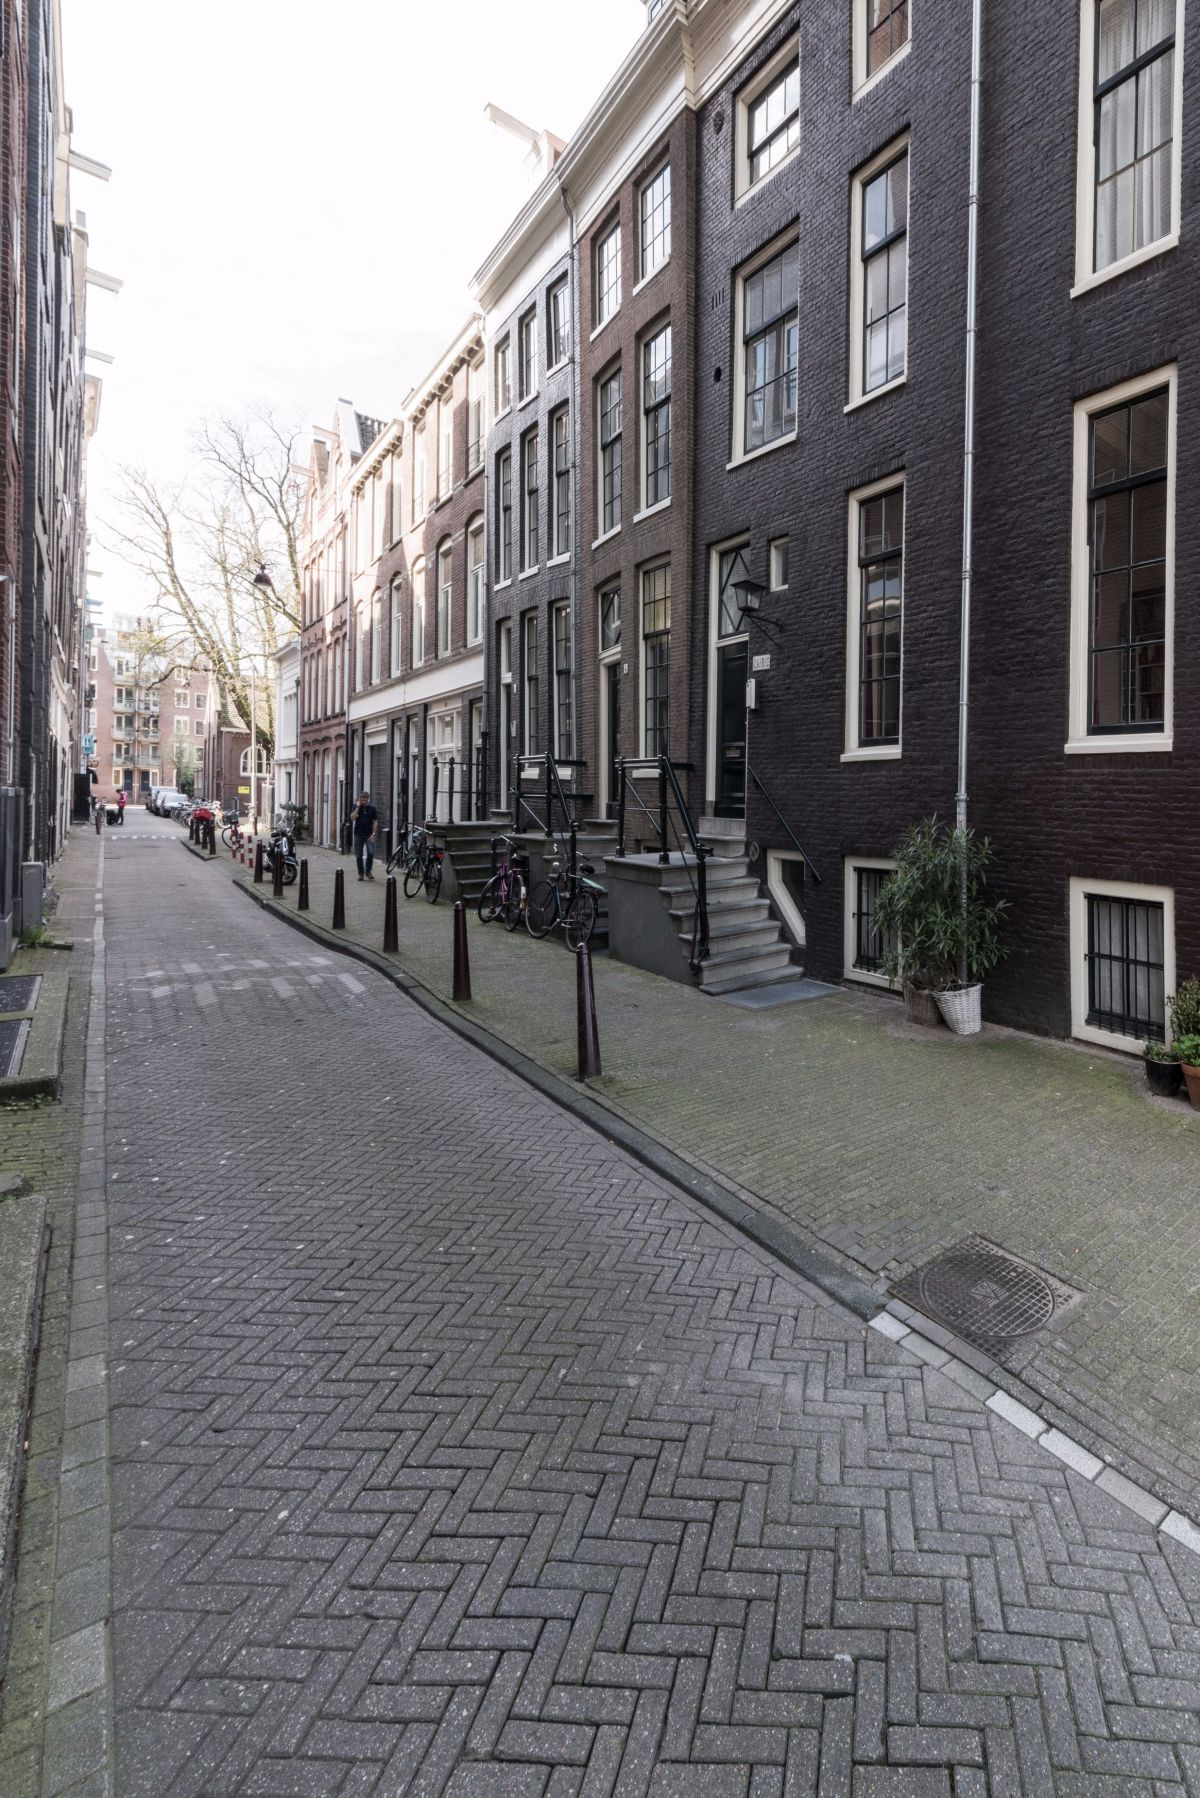 The side streets of the Amsterdam neighborhood offer plenty of charm as well.